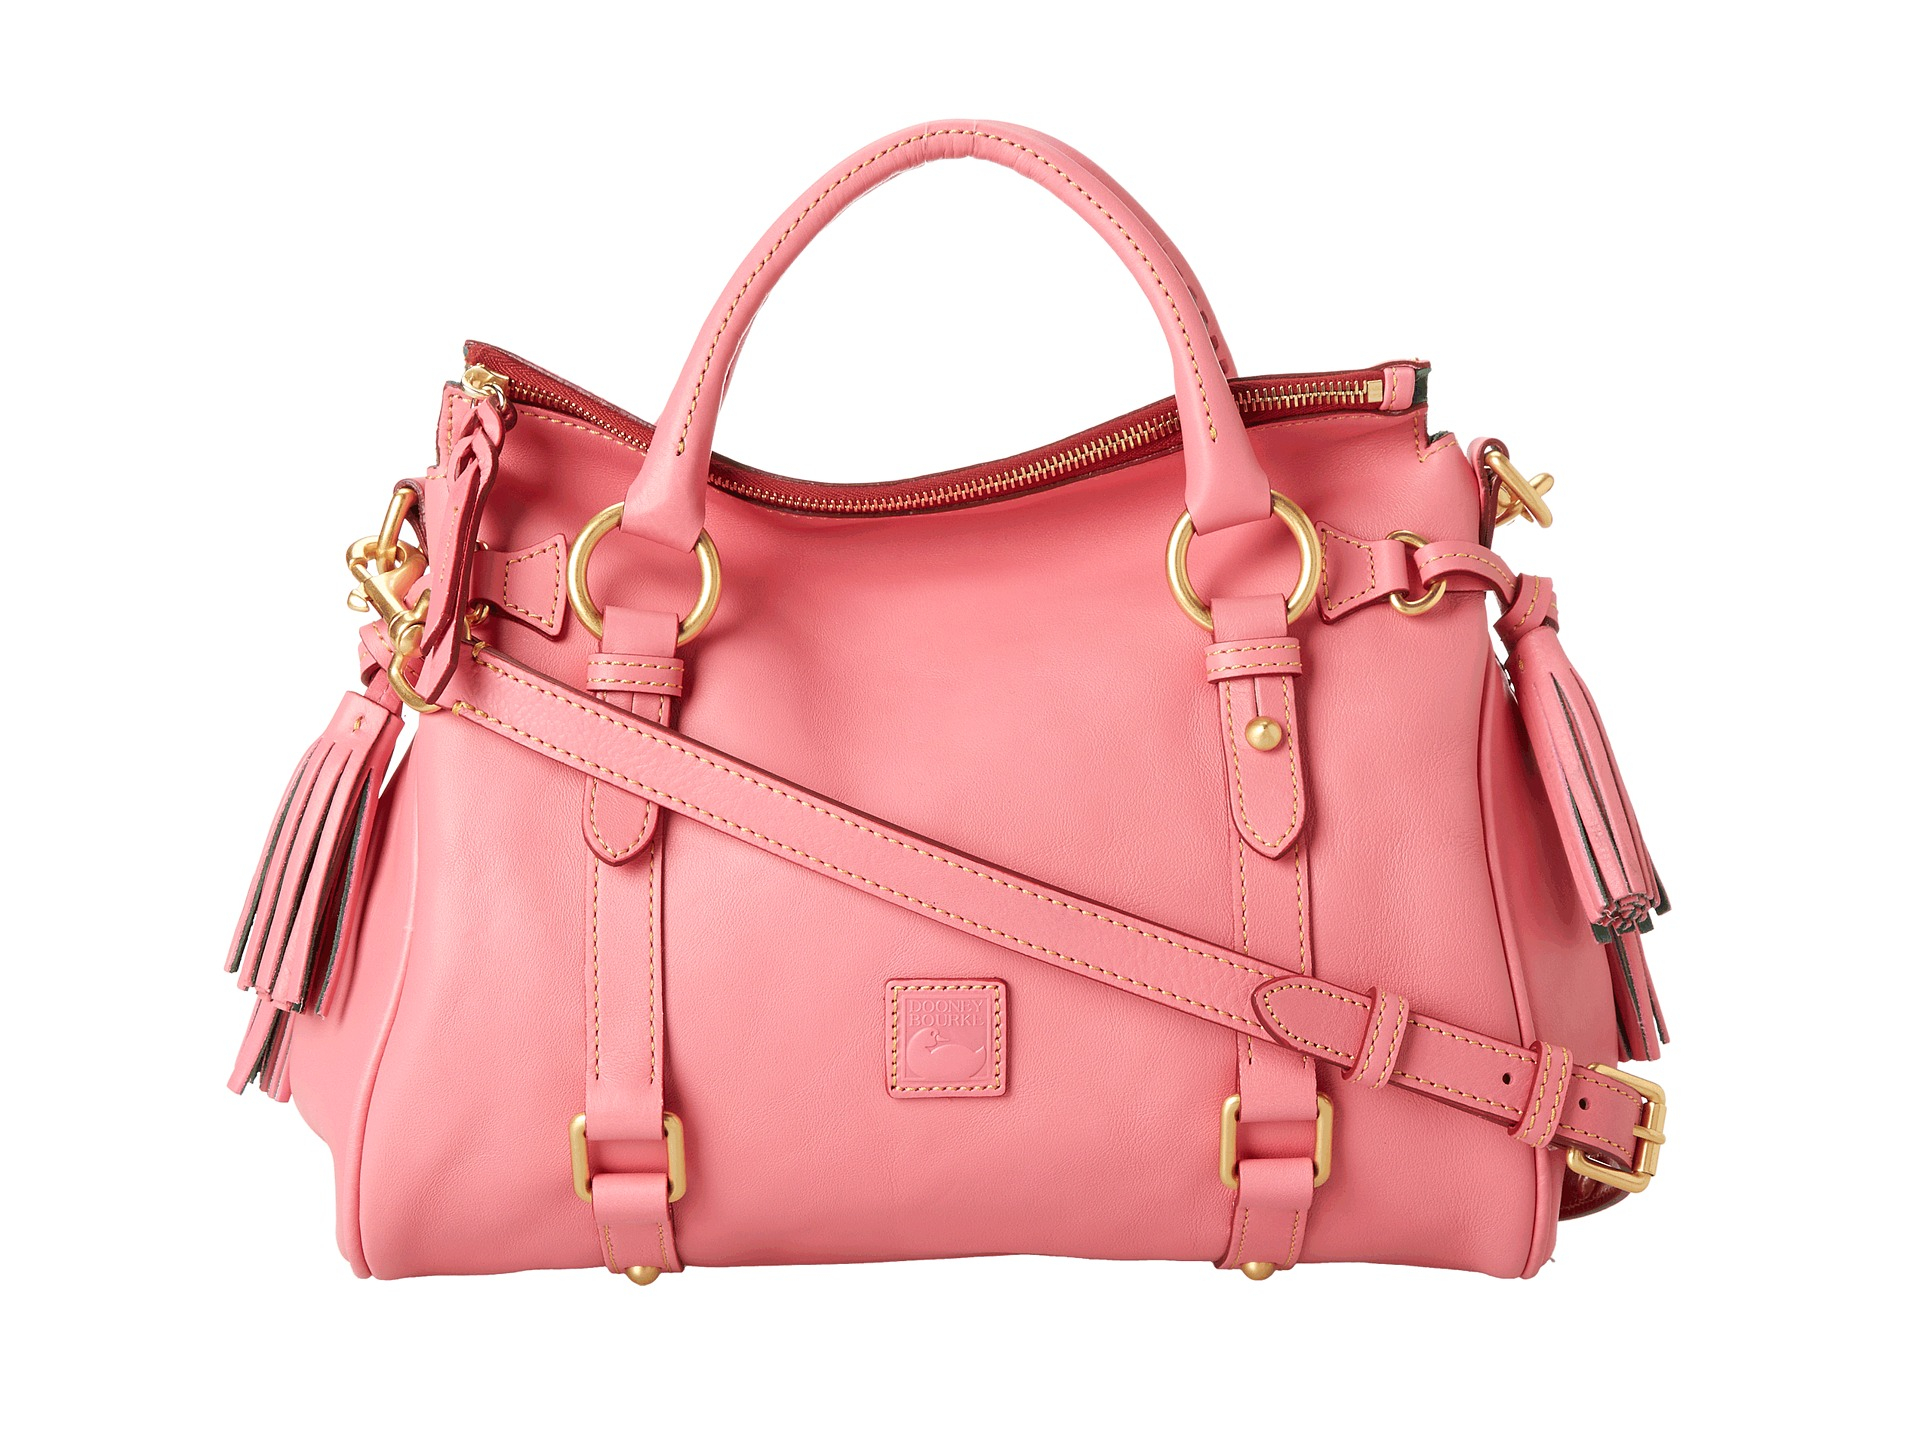 e60c6857d8a Lyst - Dooney   Bourke Florentine Small Satchel in Pink